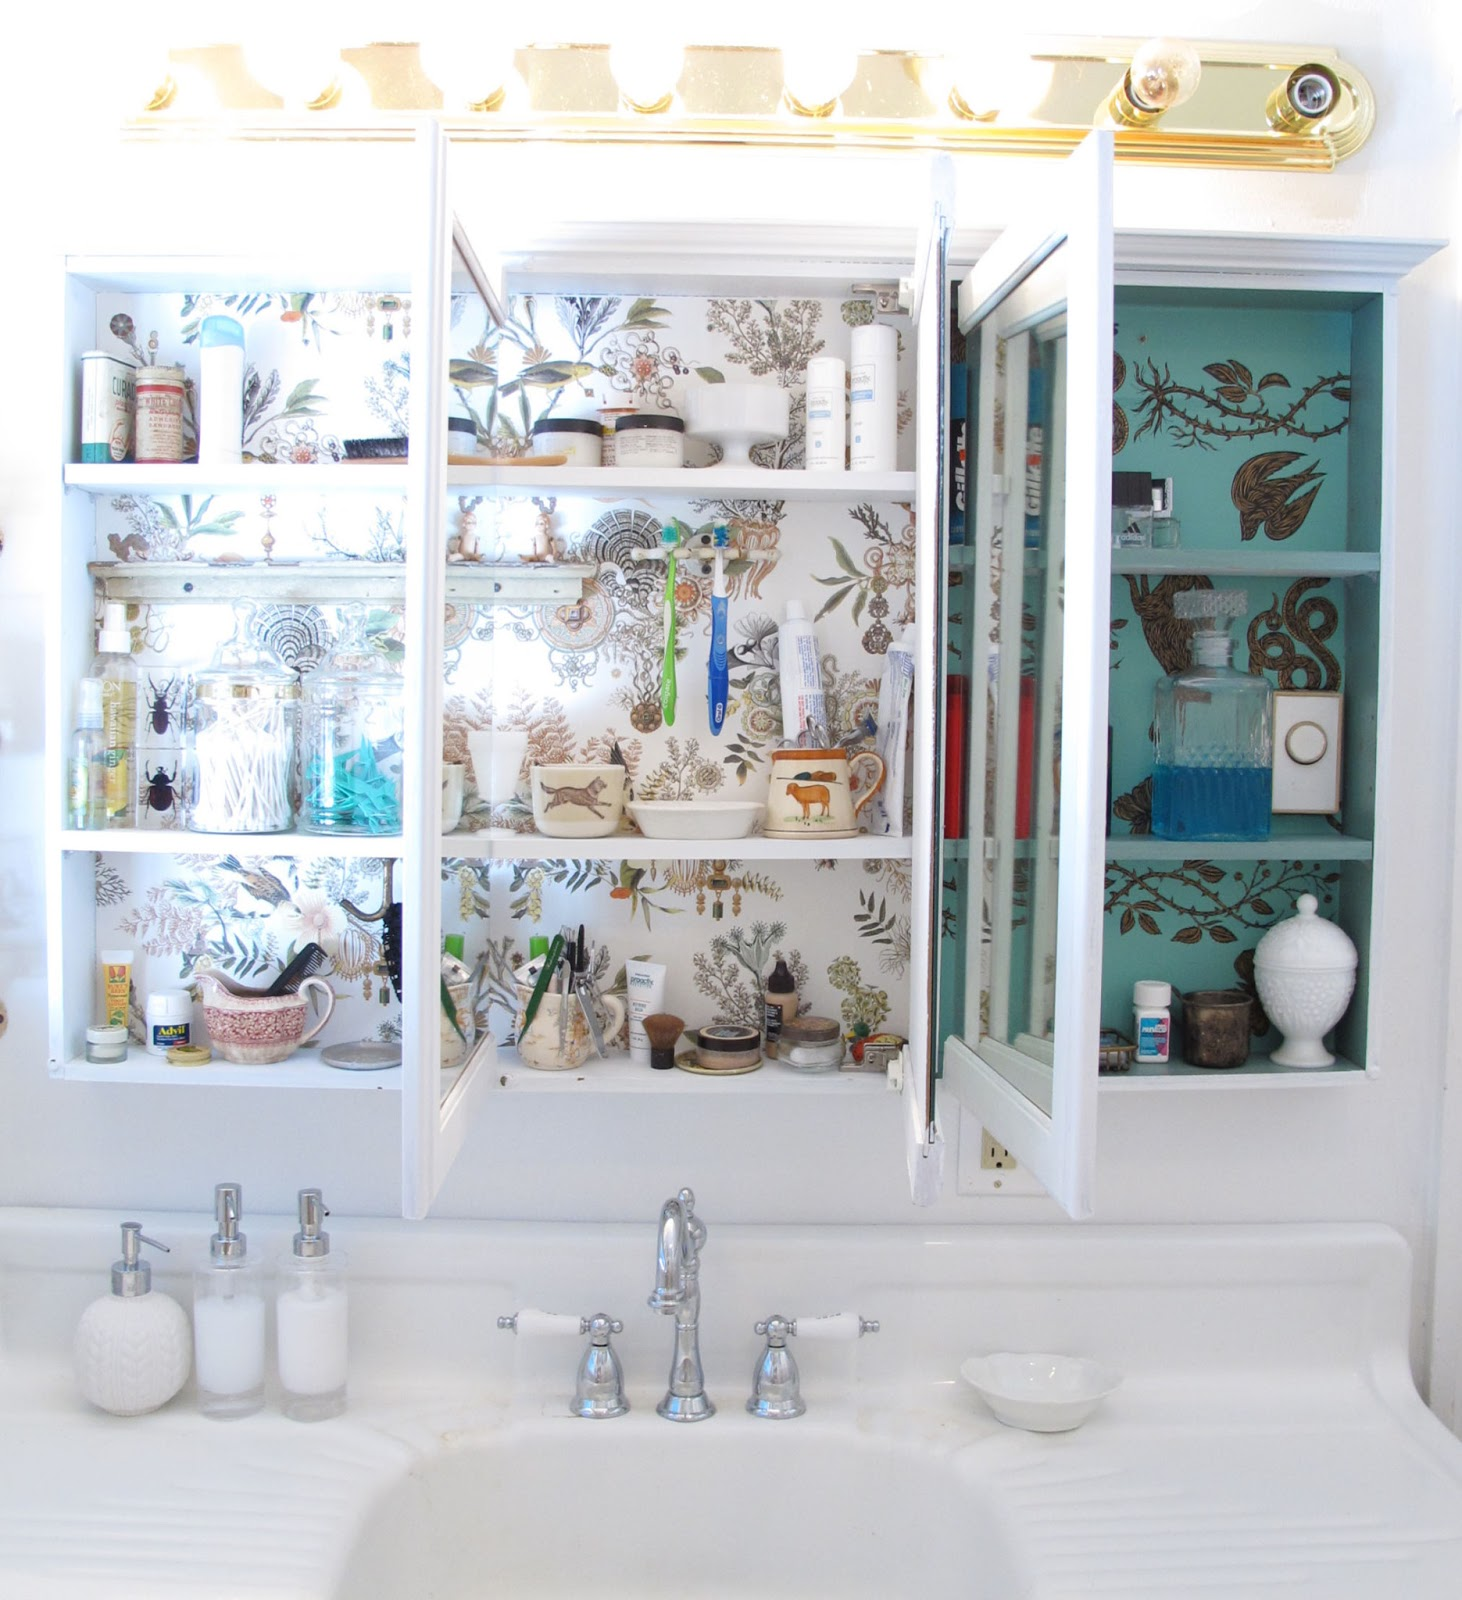 Bathroom Lights Went Out vintagecrystal: master bathroom tour!